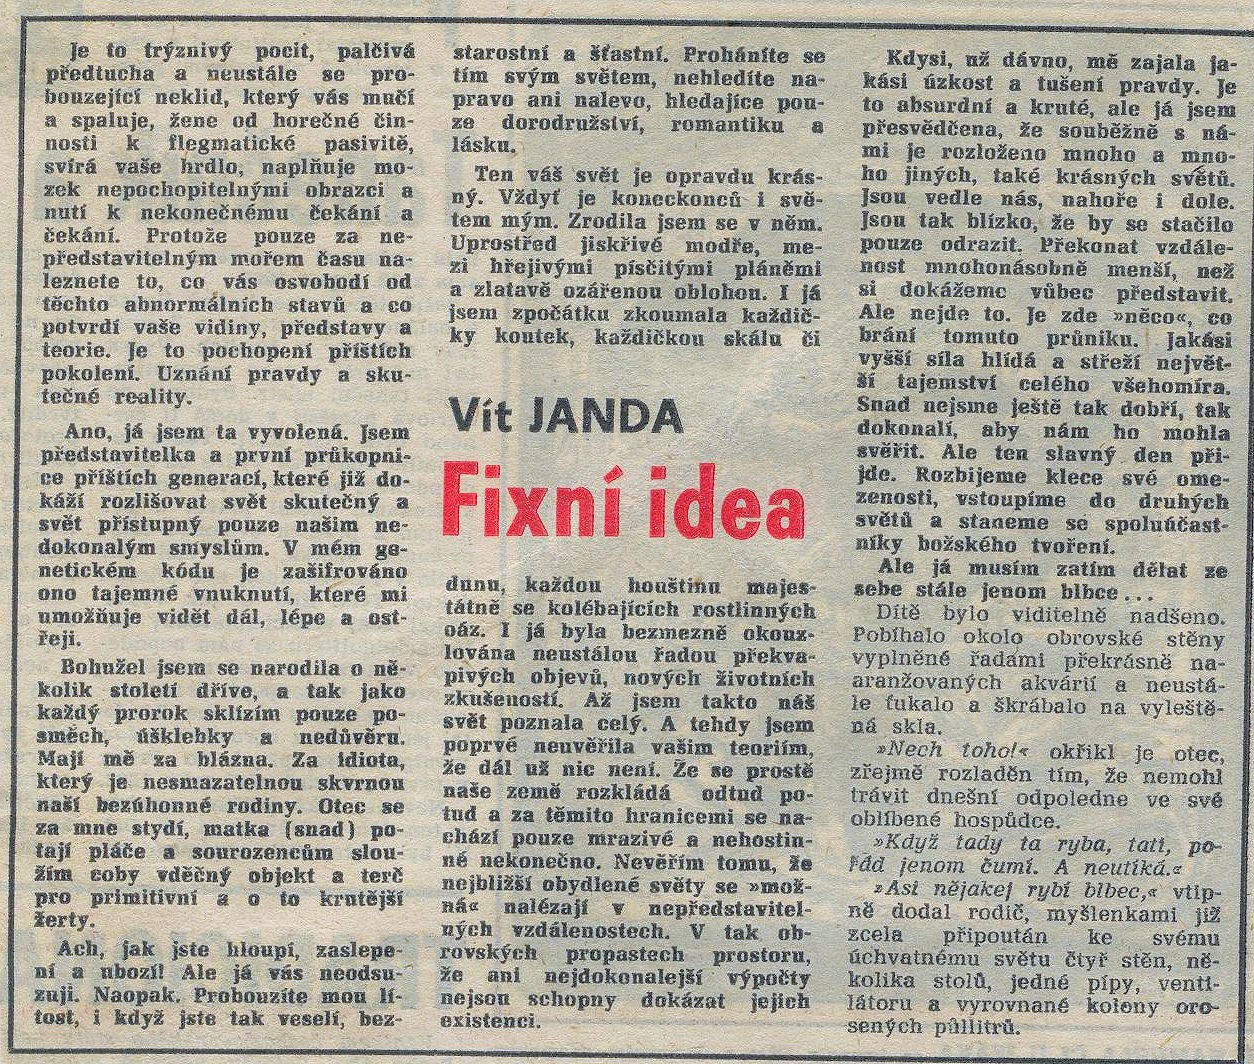 011-fixni-idea.jpg